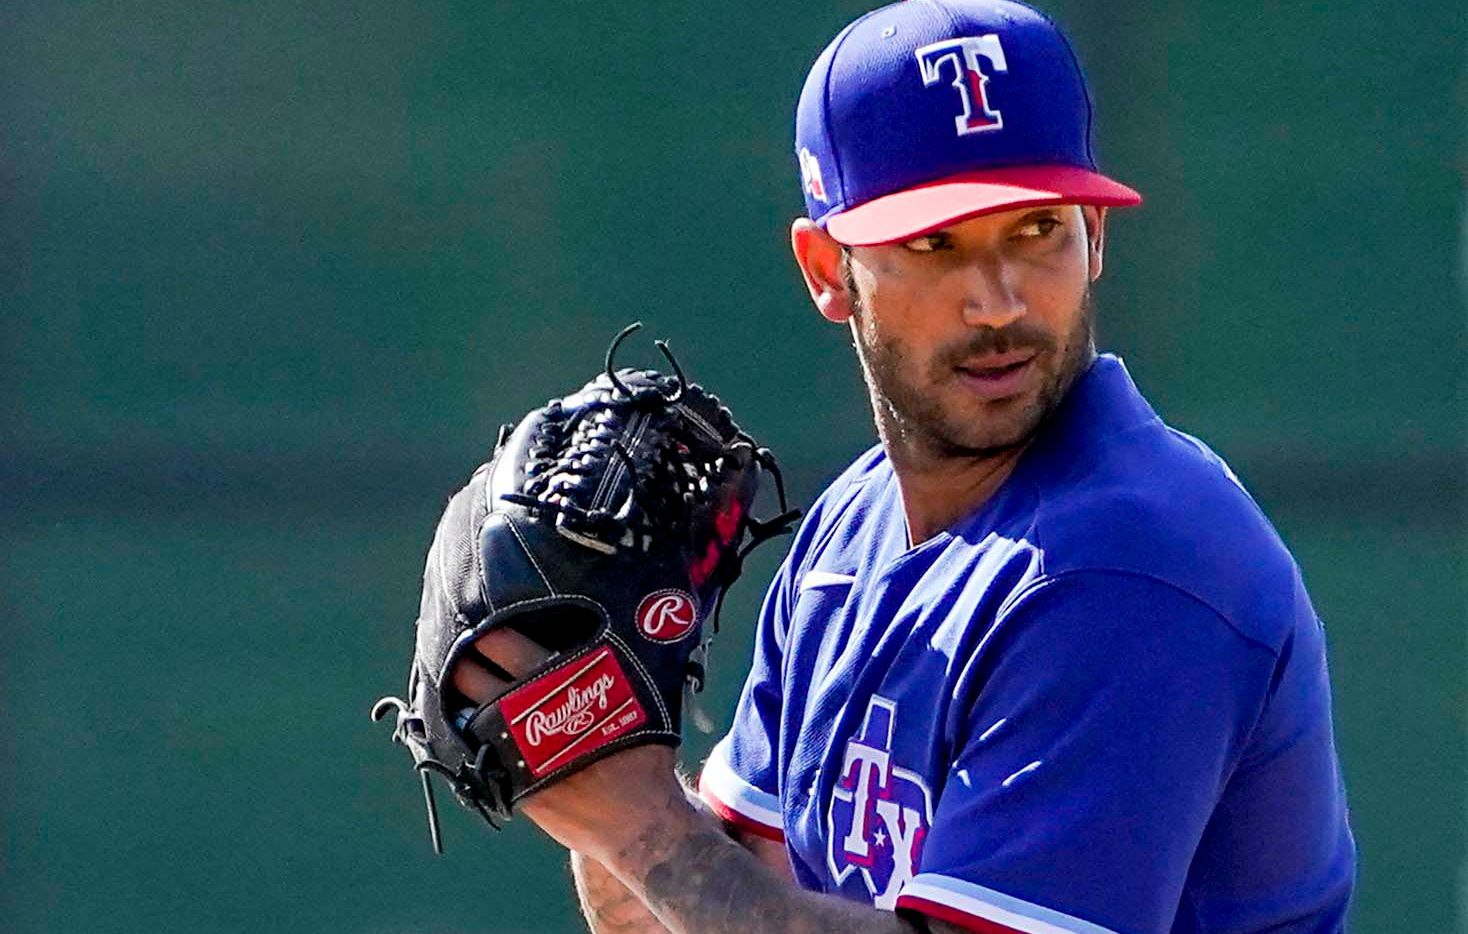 Texas Rangers pitcher Matt Bush throws live batting practice uring a spring training workout at the team's training facility on Saturday, March 6, 2021, in Surprise, Ariz.